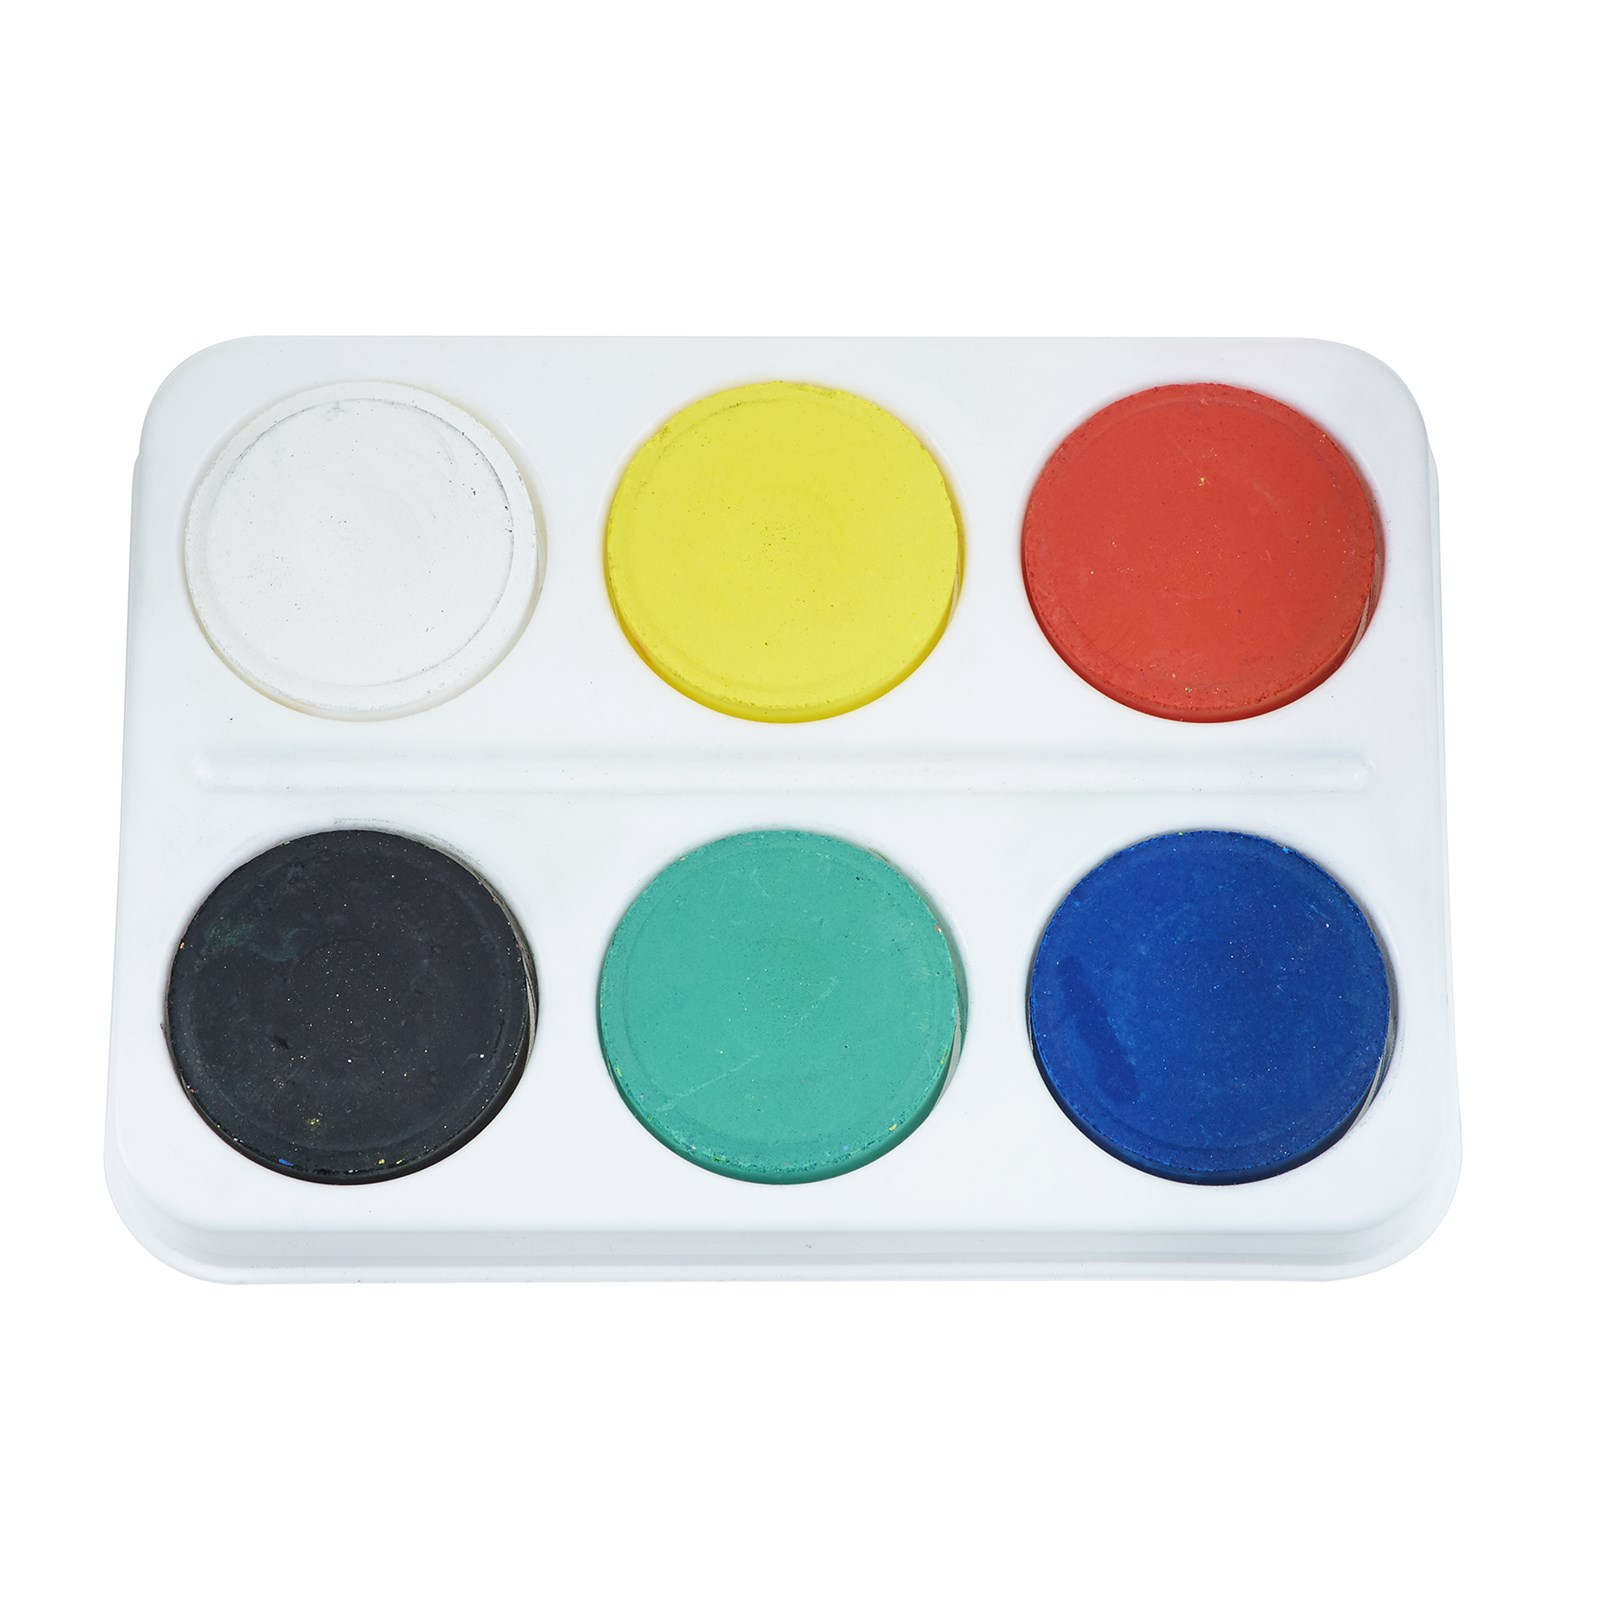 Classmates Colour Blocks in Assorted - Tray